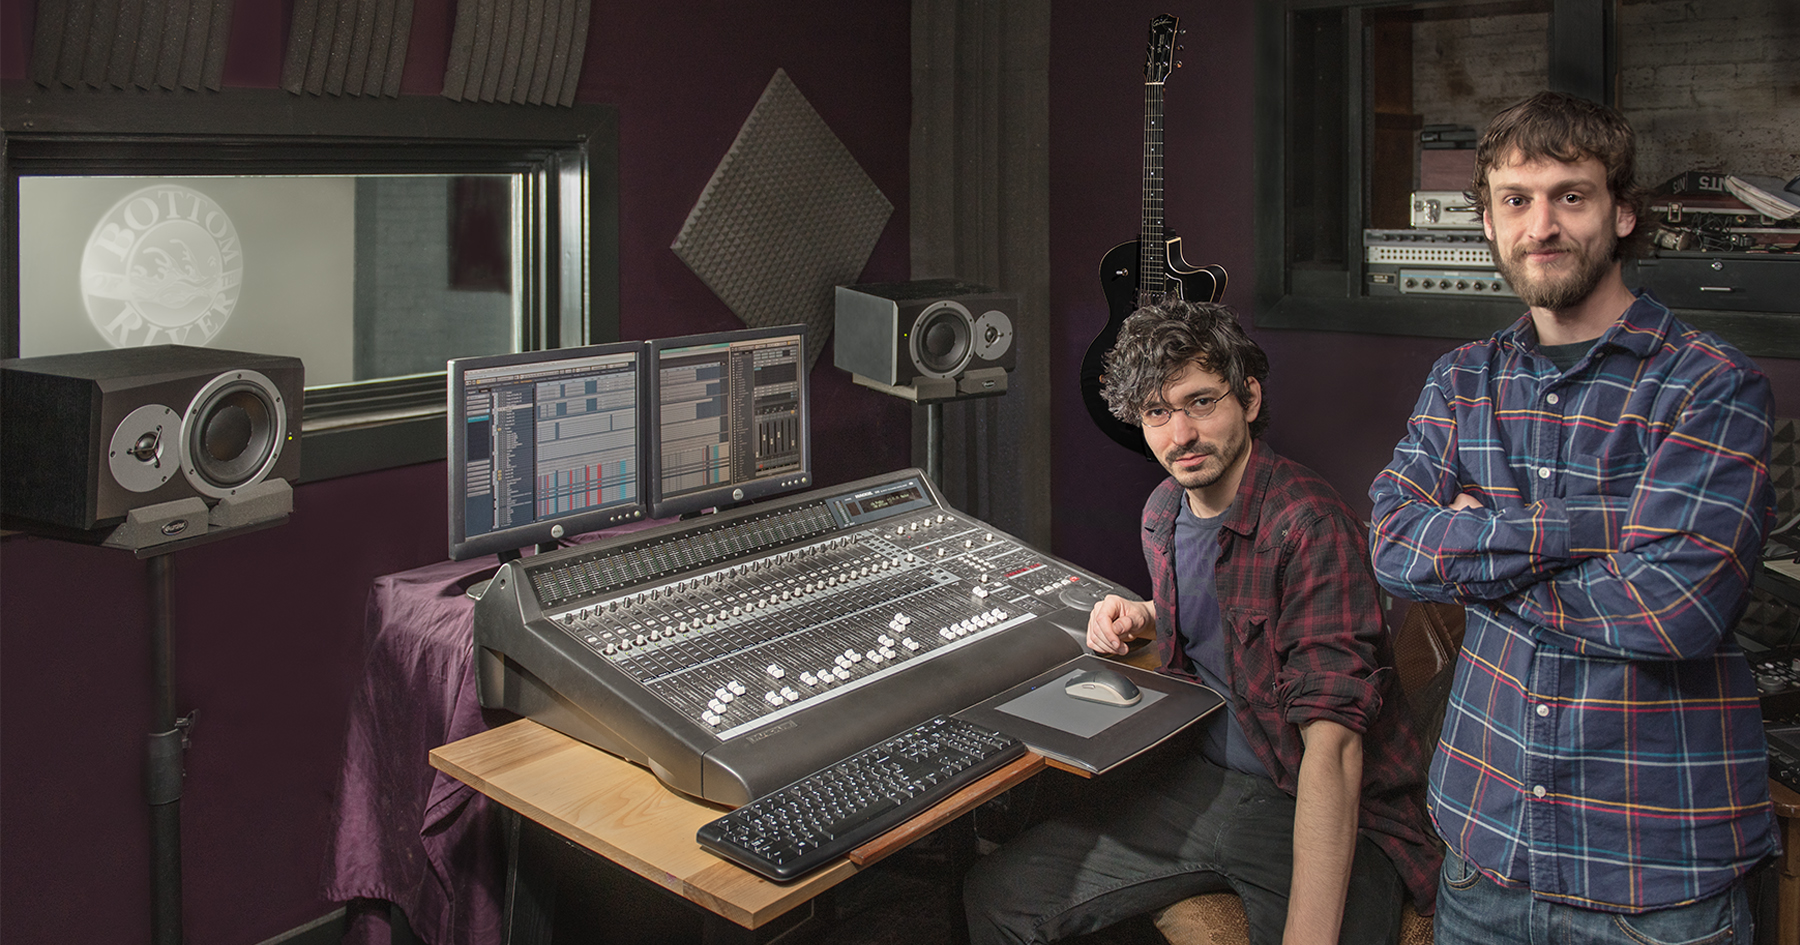 Nick Bilotta and Brian Andrews at the controls of their recording studio in the Pepperell Mill Campus. Photograph by Portland Headshot.